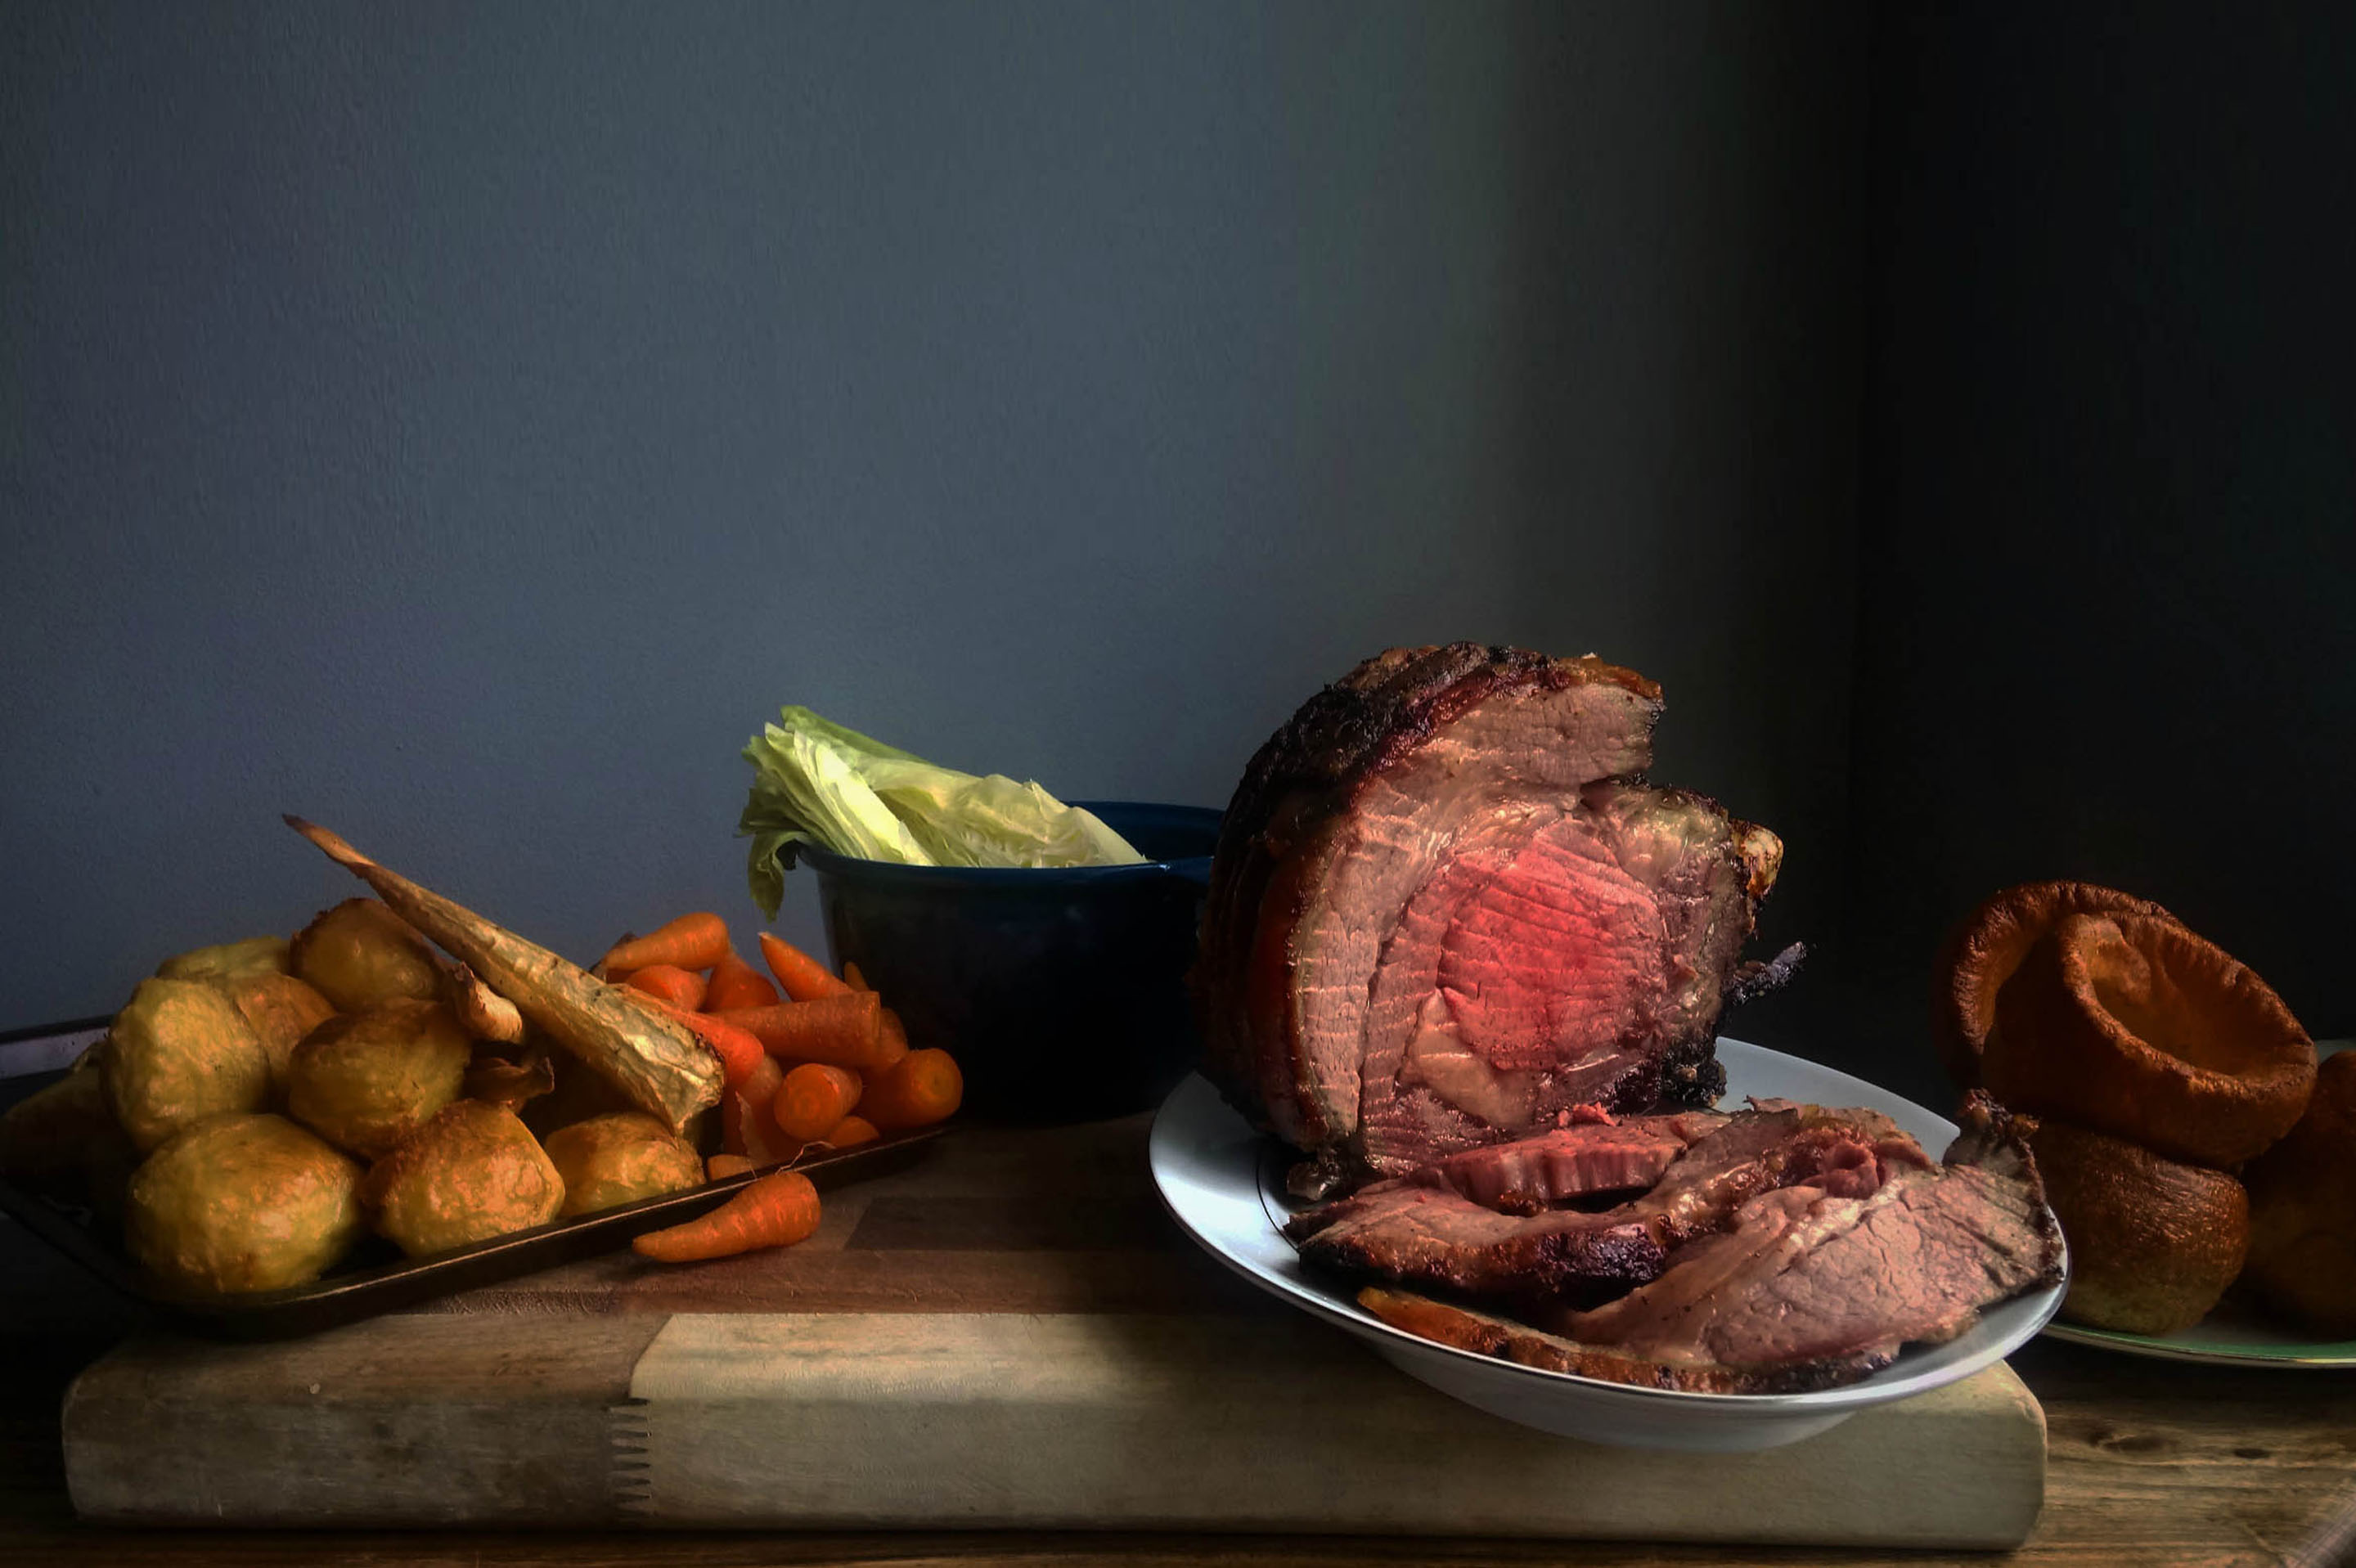 Revealed: The Art Of Creating The Great British Sunday Roast